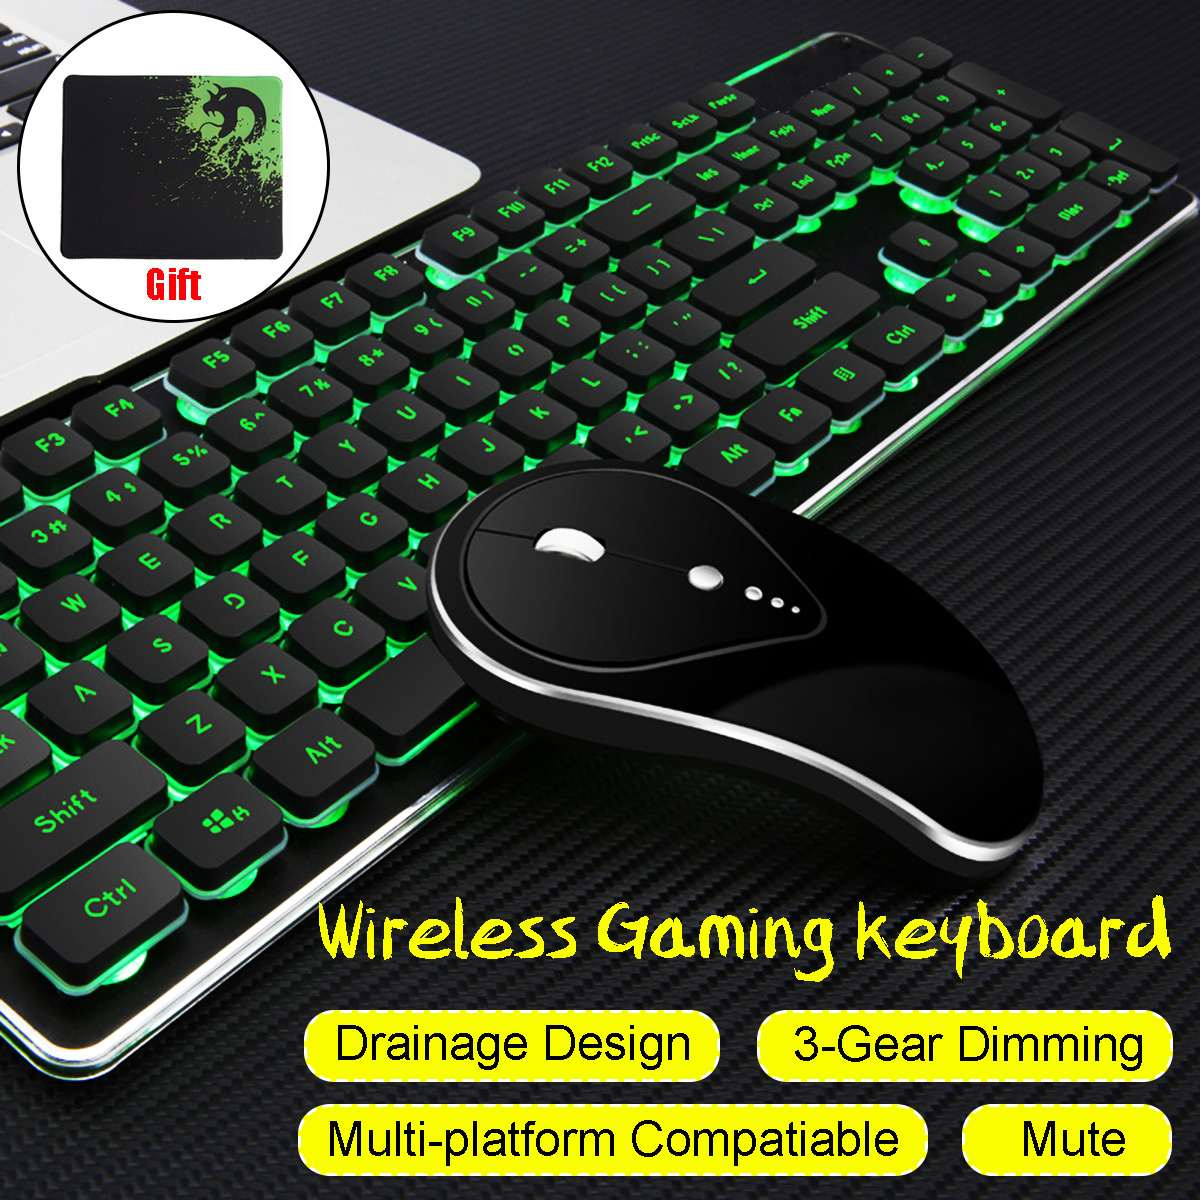 Luminous Mute Backlit Wireless <font><b>Gaming</b></font> <font><b>Keyboard</b></font> <font><b>and</b></font> <font><b>Mouse</b></font> Ergonomic Rechargeable USB <font><b>Gaming</b></font> Sets <font><b>With</b></font> <font><b>Mousepad</b></font> for PC Gamer image